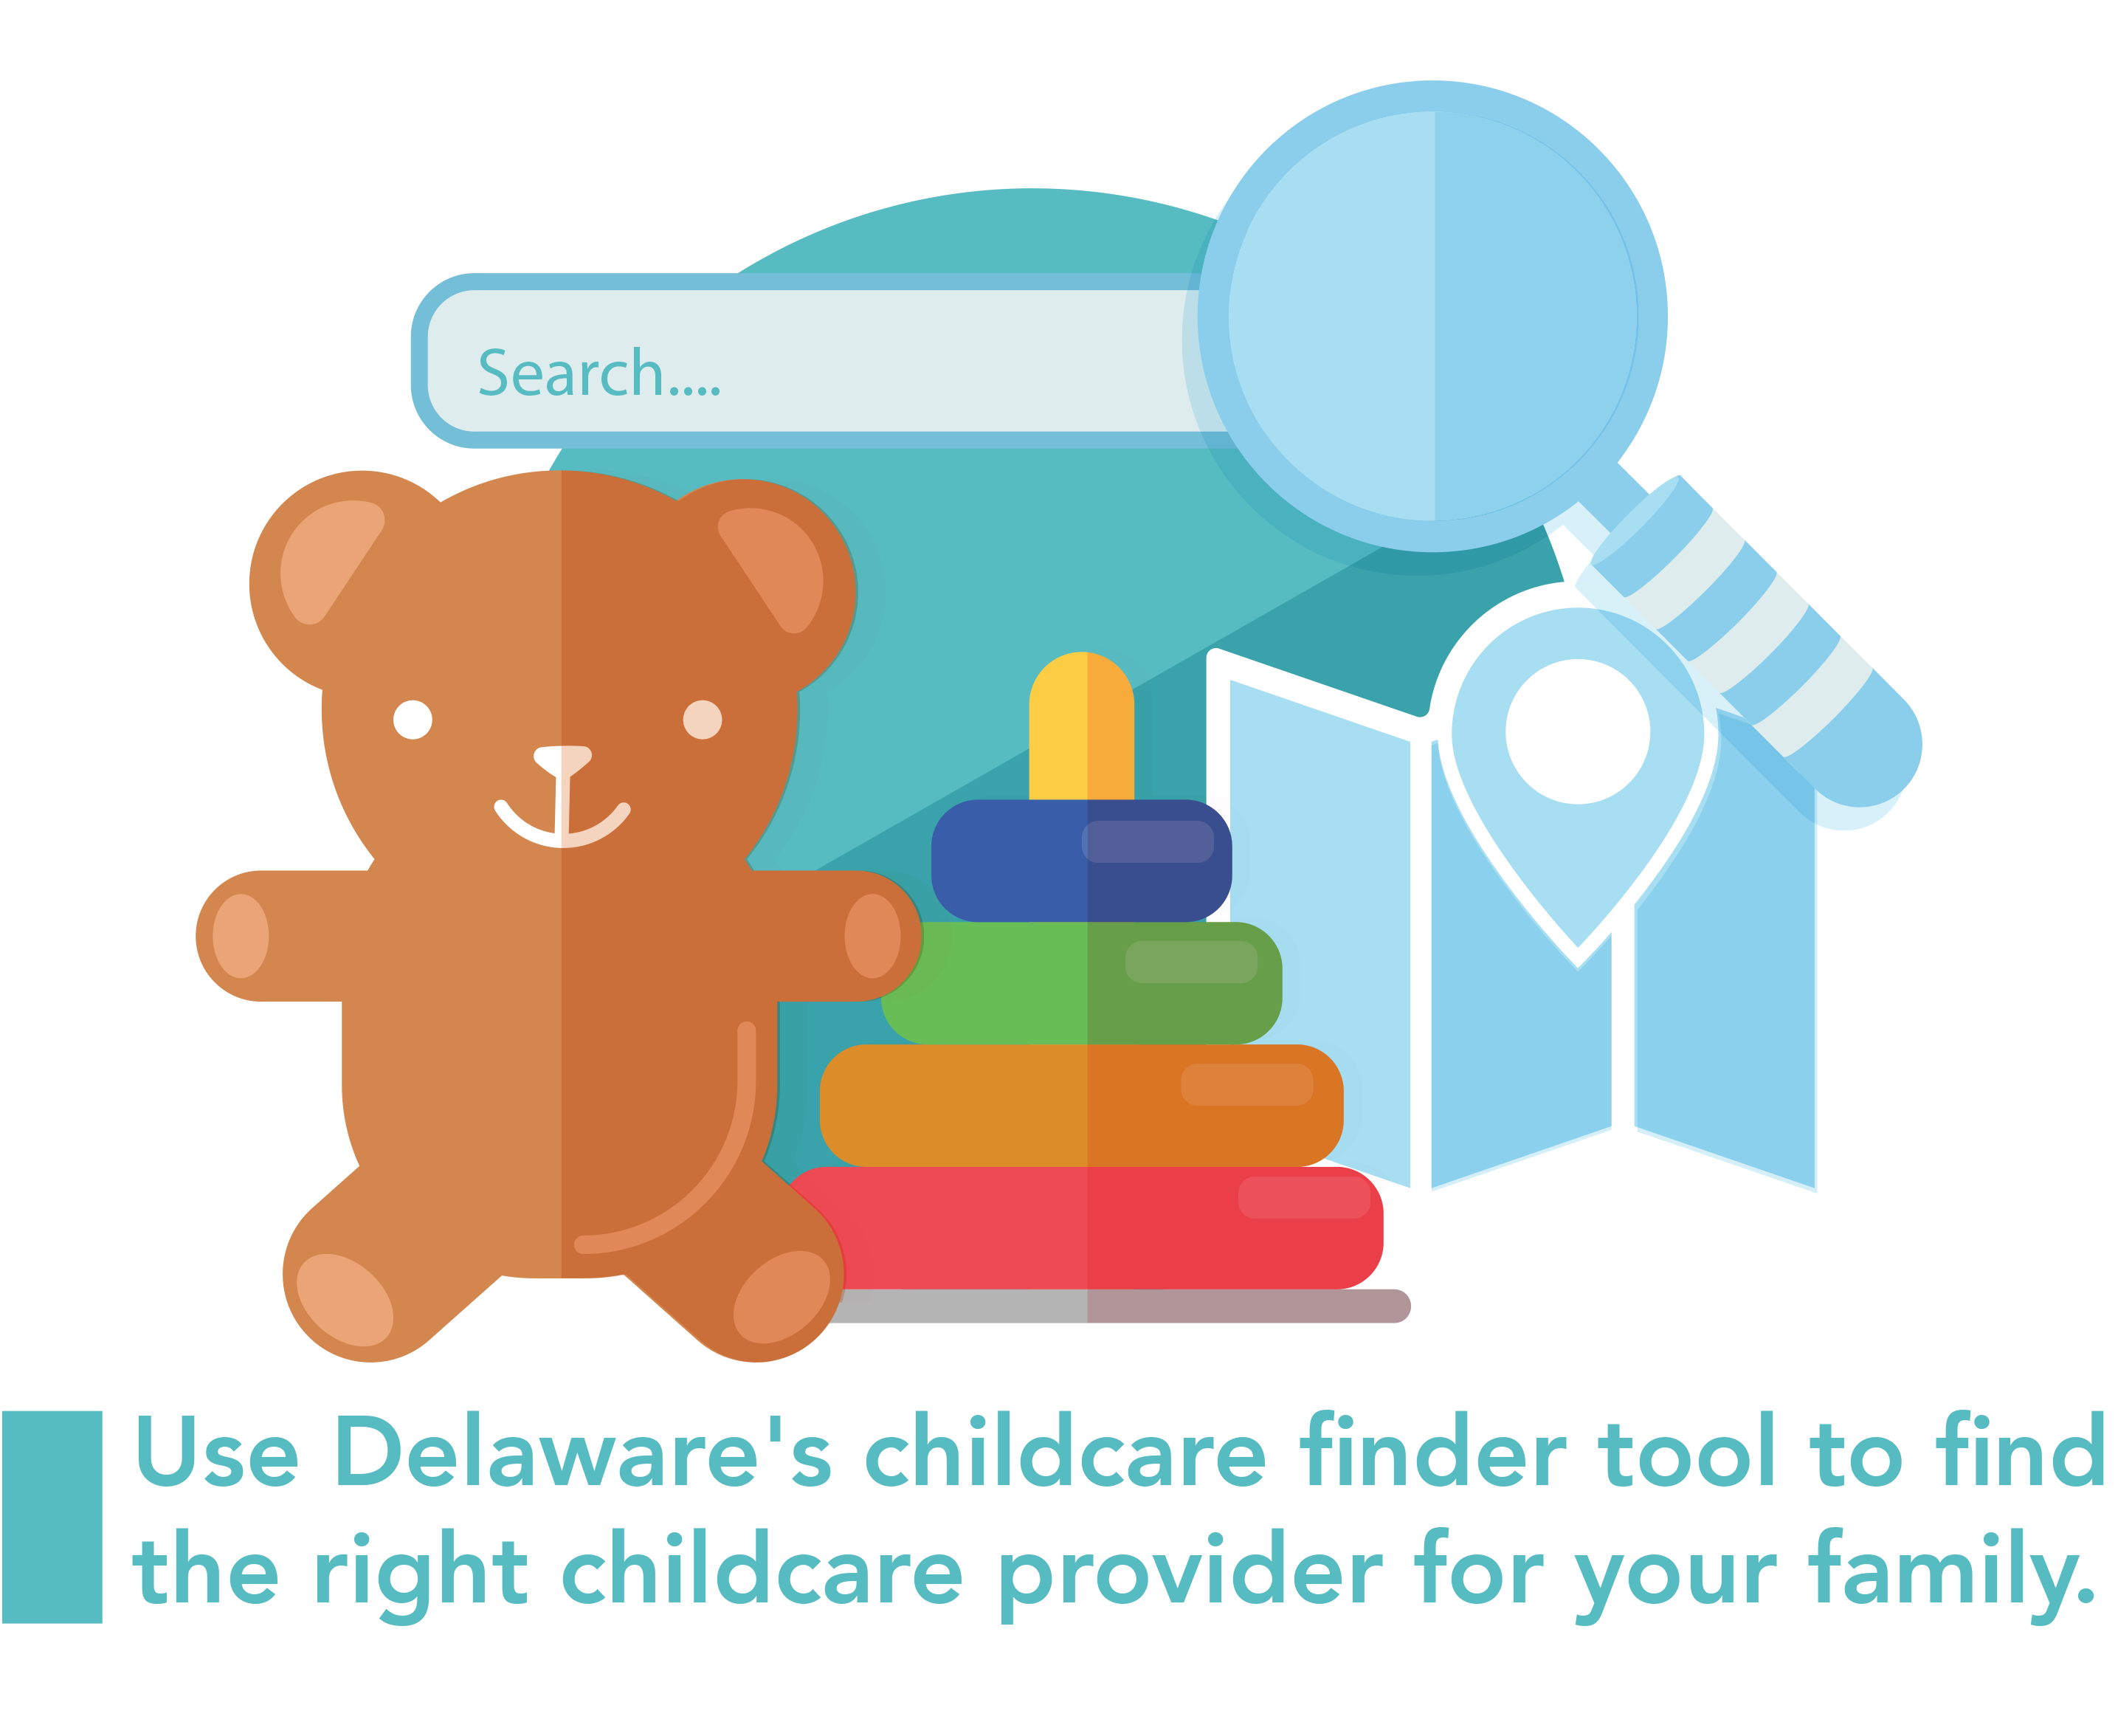 A graphic of a teddy bear and other children toys as well as a search icon representing the childcare finder tool.